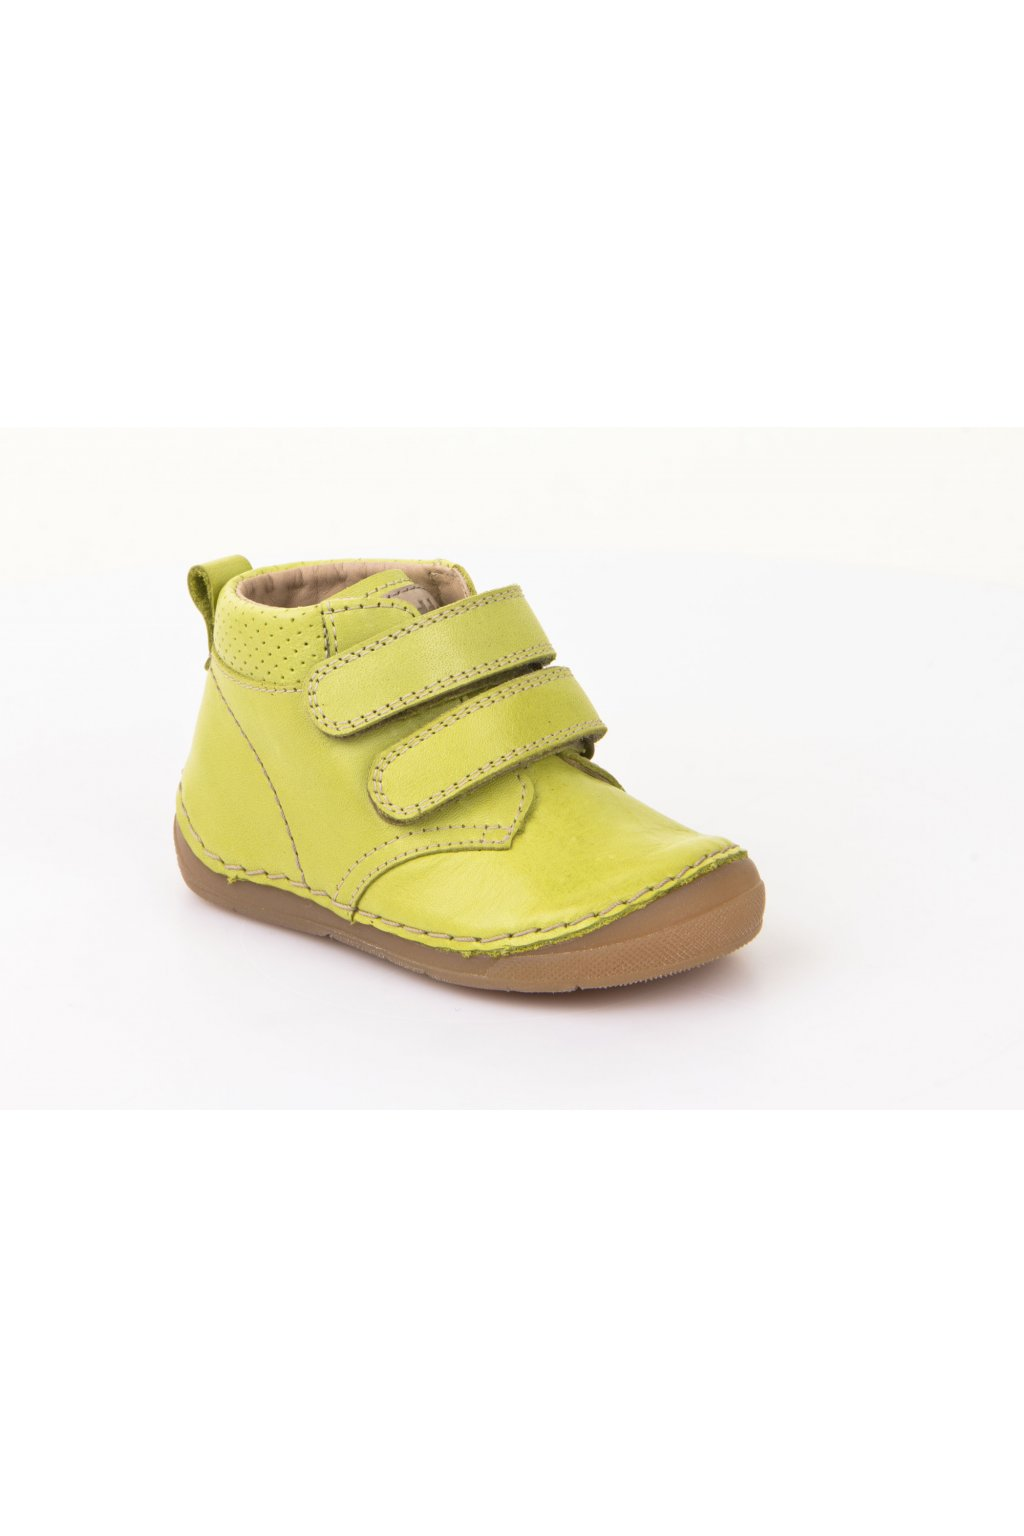 Froddo shoes Lime